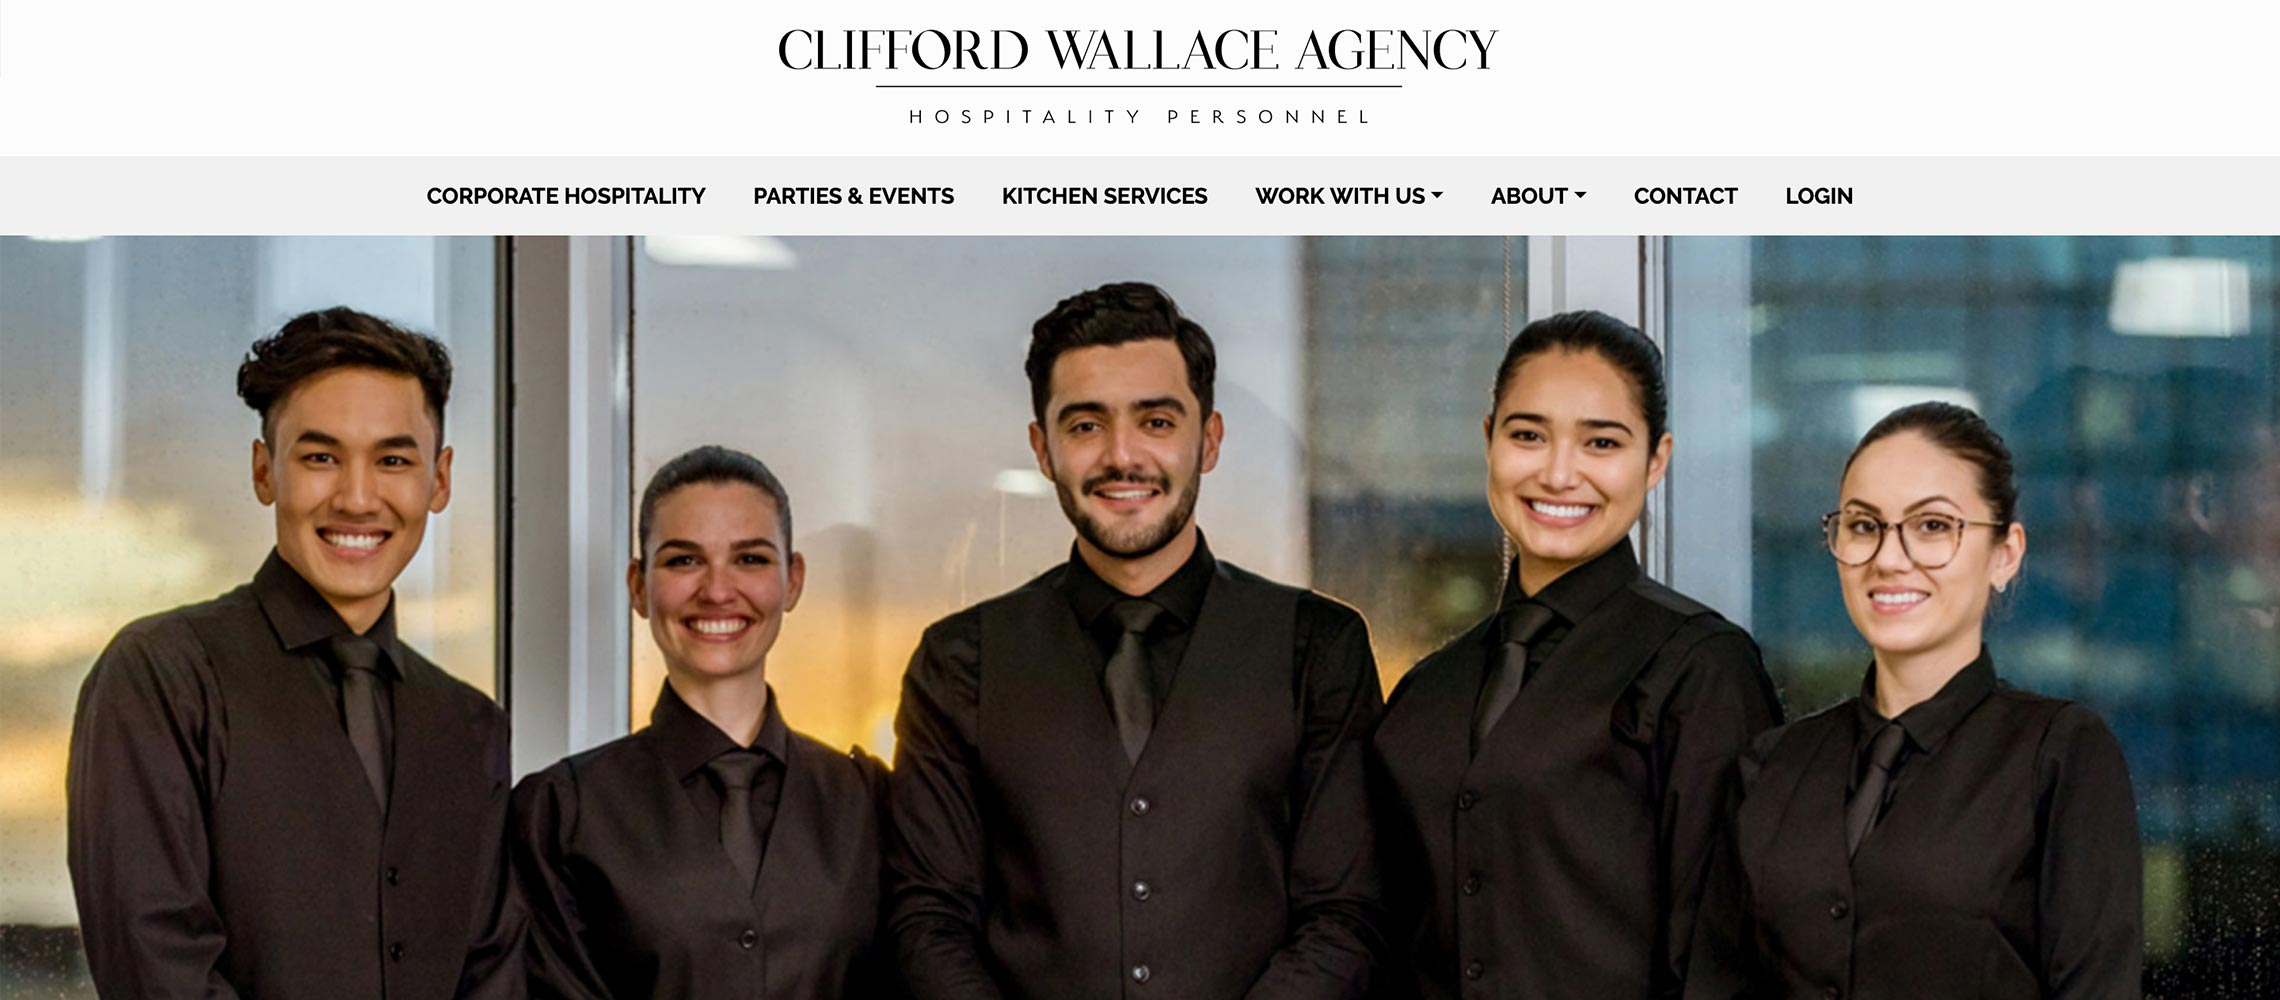 Clifford Wallace Agency